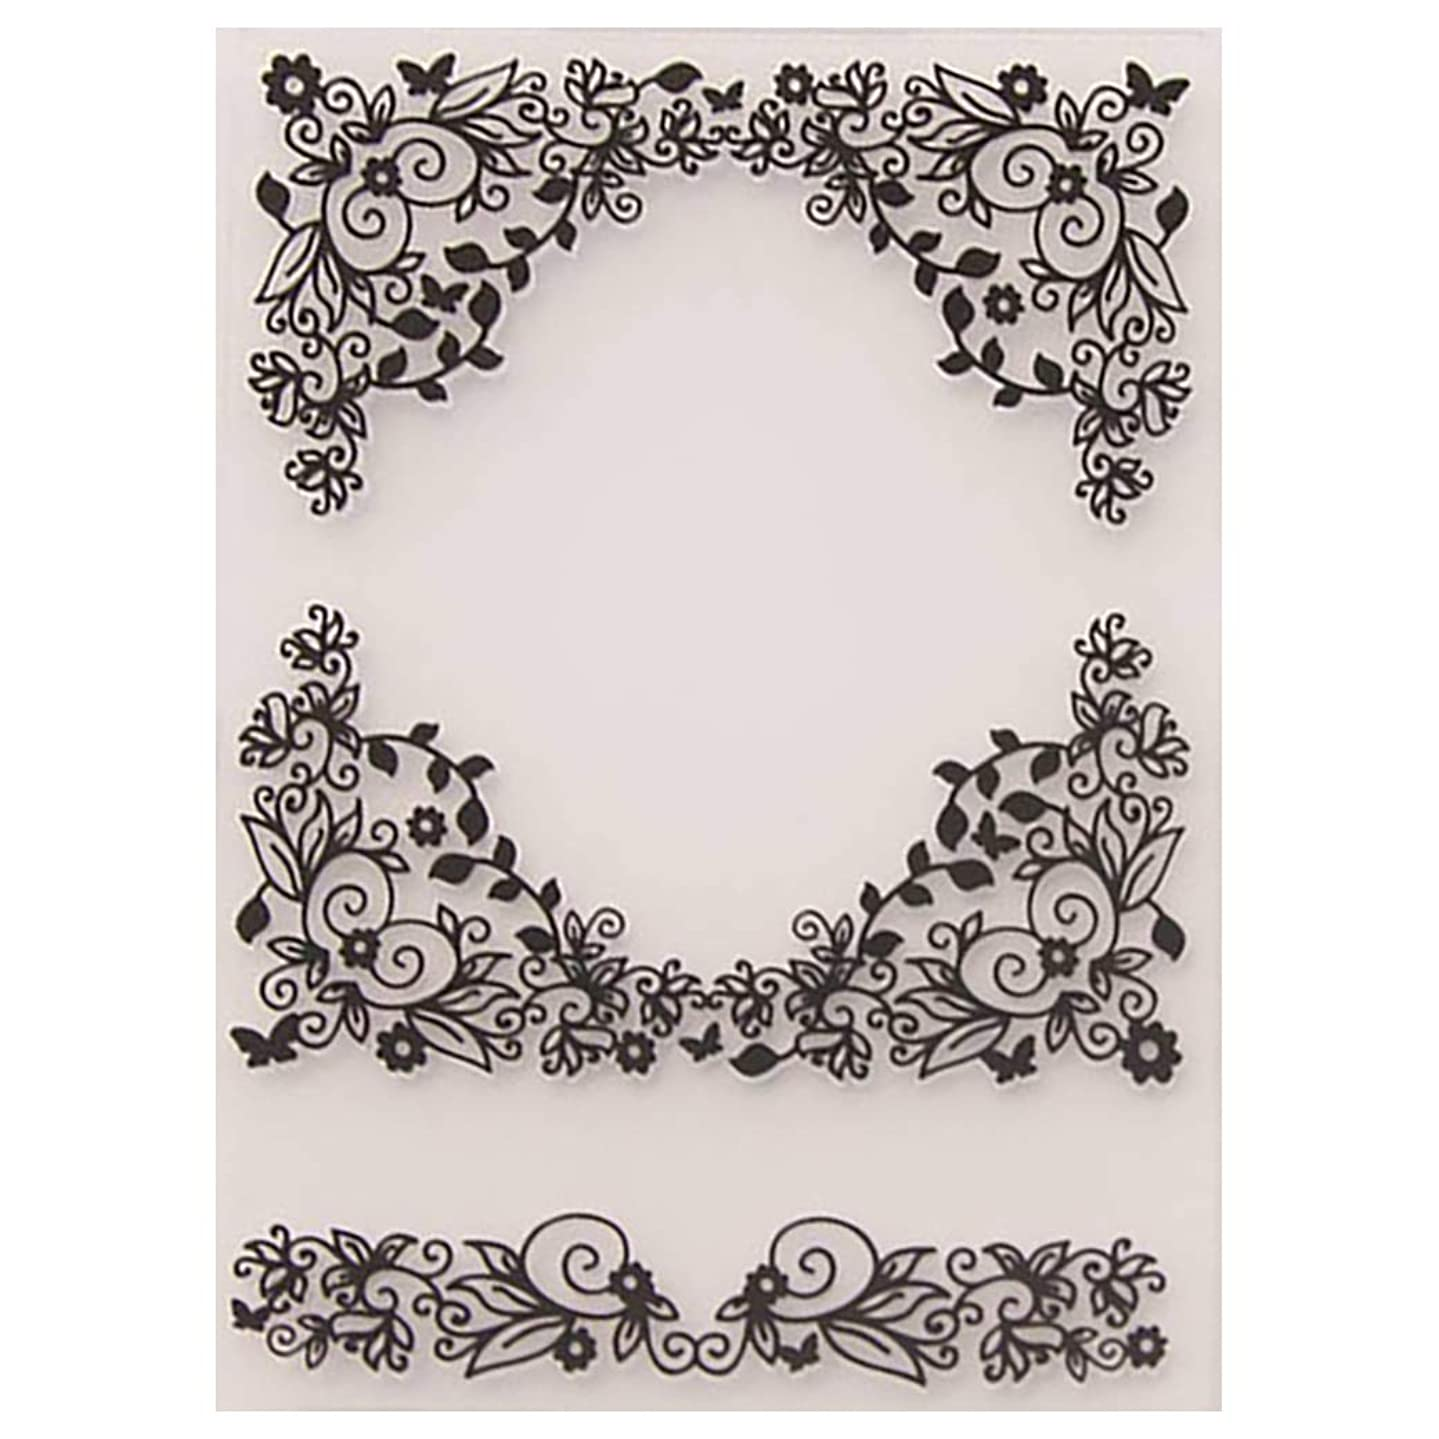 Kwan Crafts Flowers Corner Plastic Embossing Folders for Card Making Scrapbooking and Other Paper Crafts,10.4x14.6cm